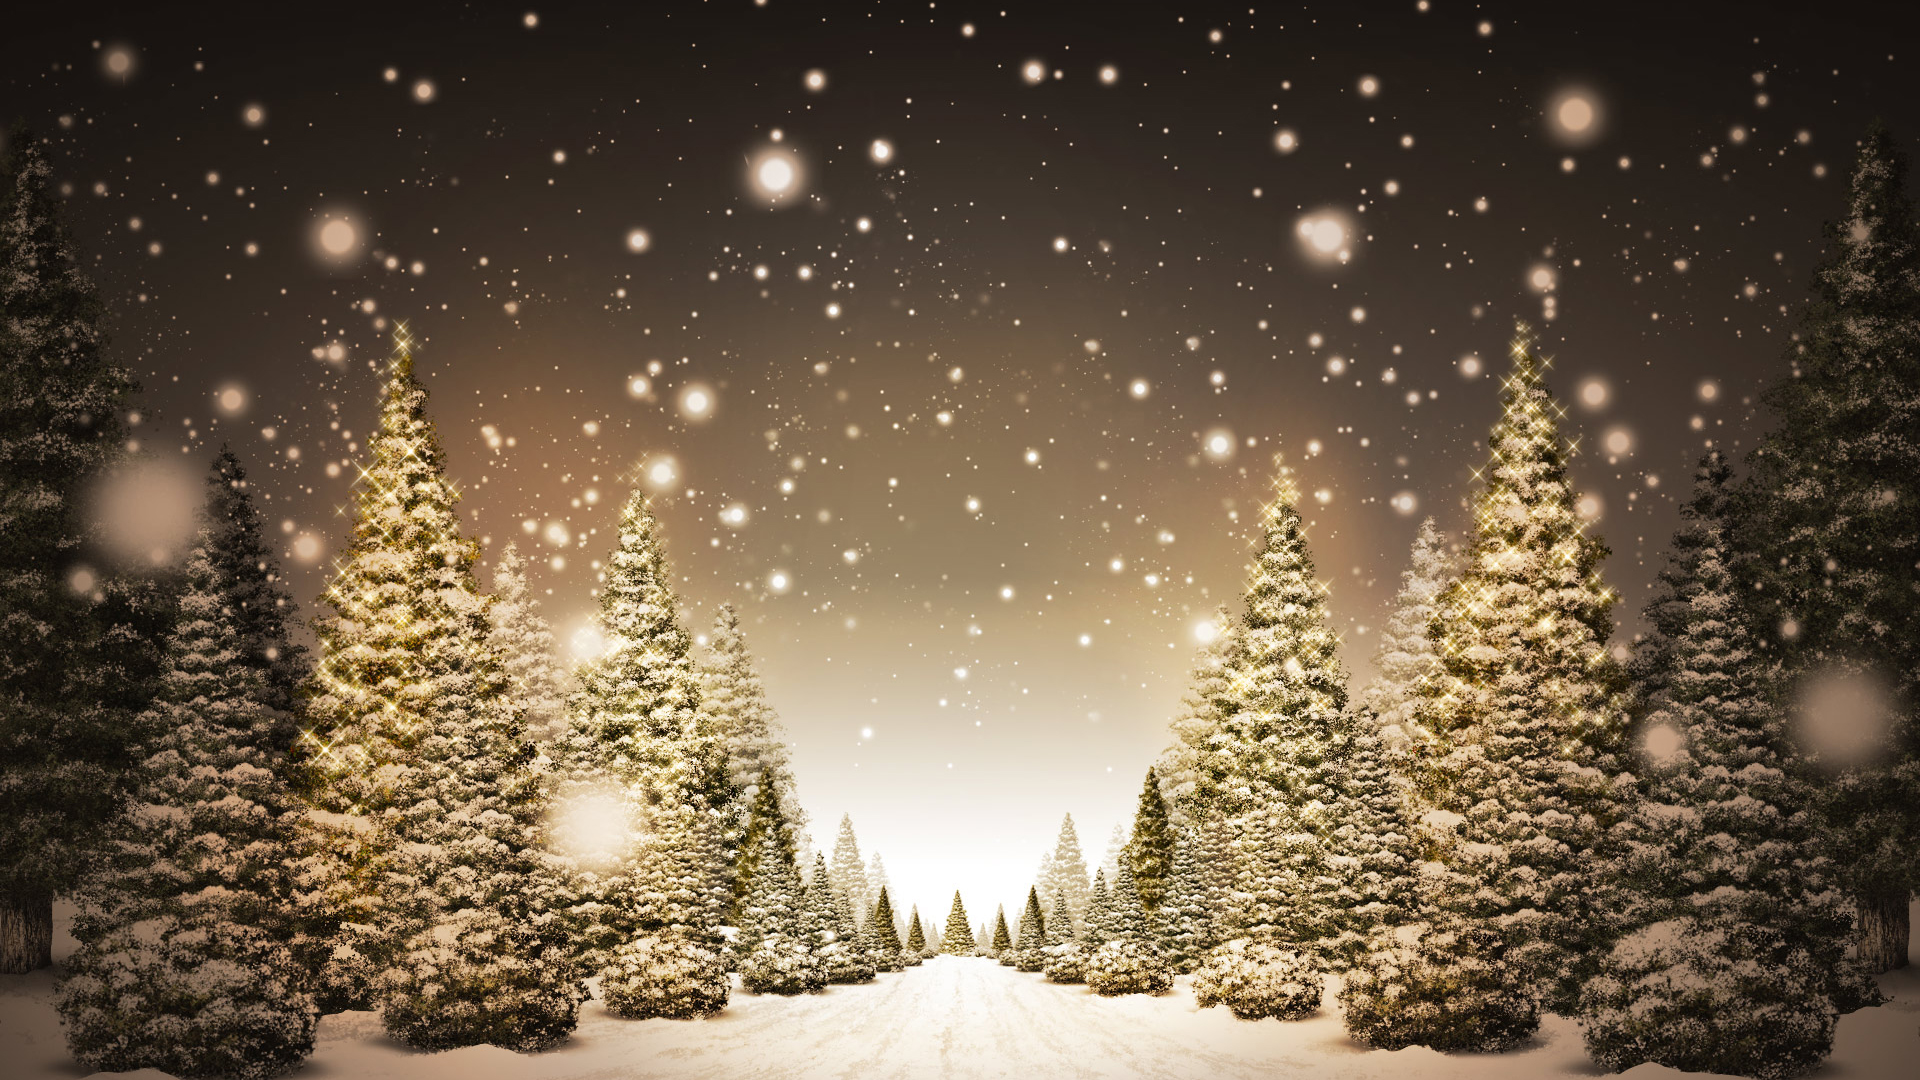 Christmas Trees Wallpaper 1080p 1920x1080